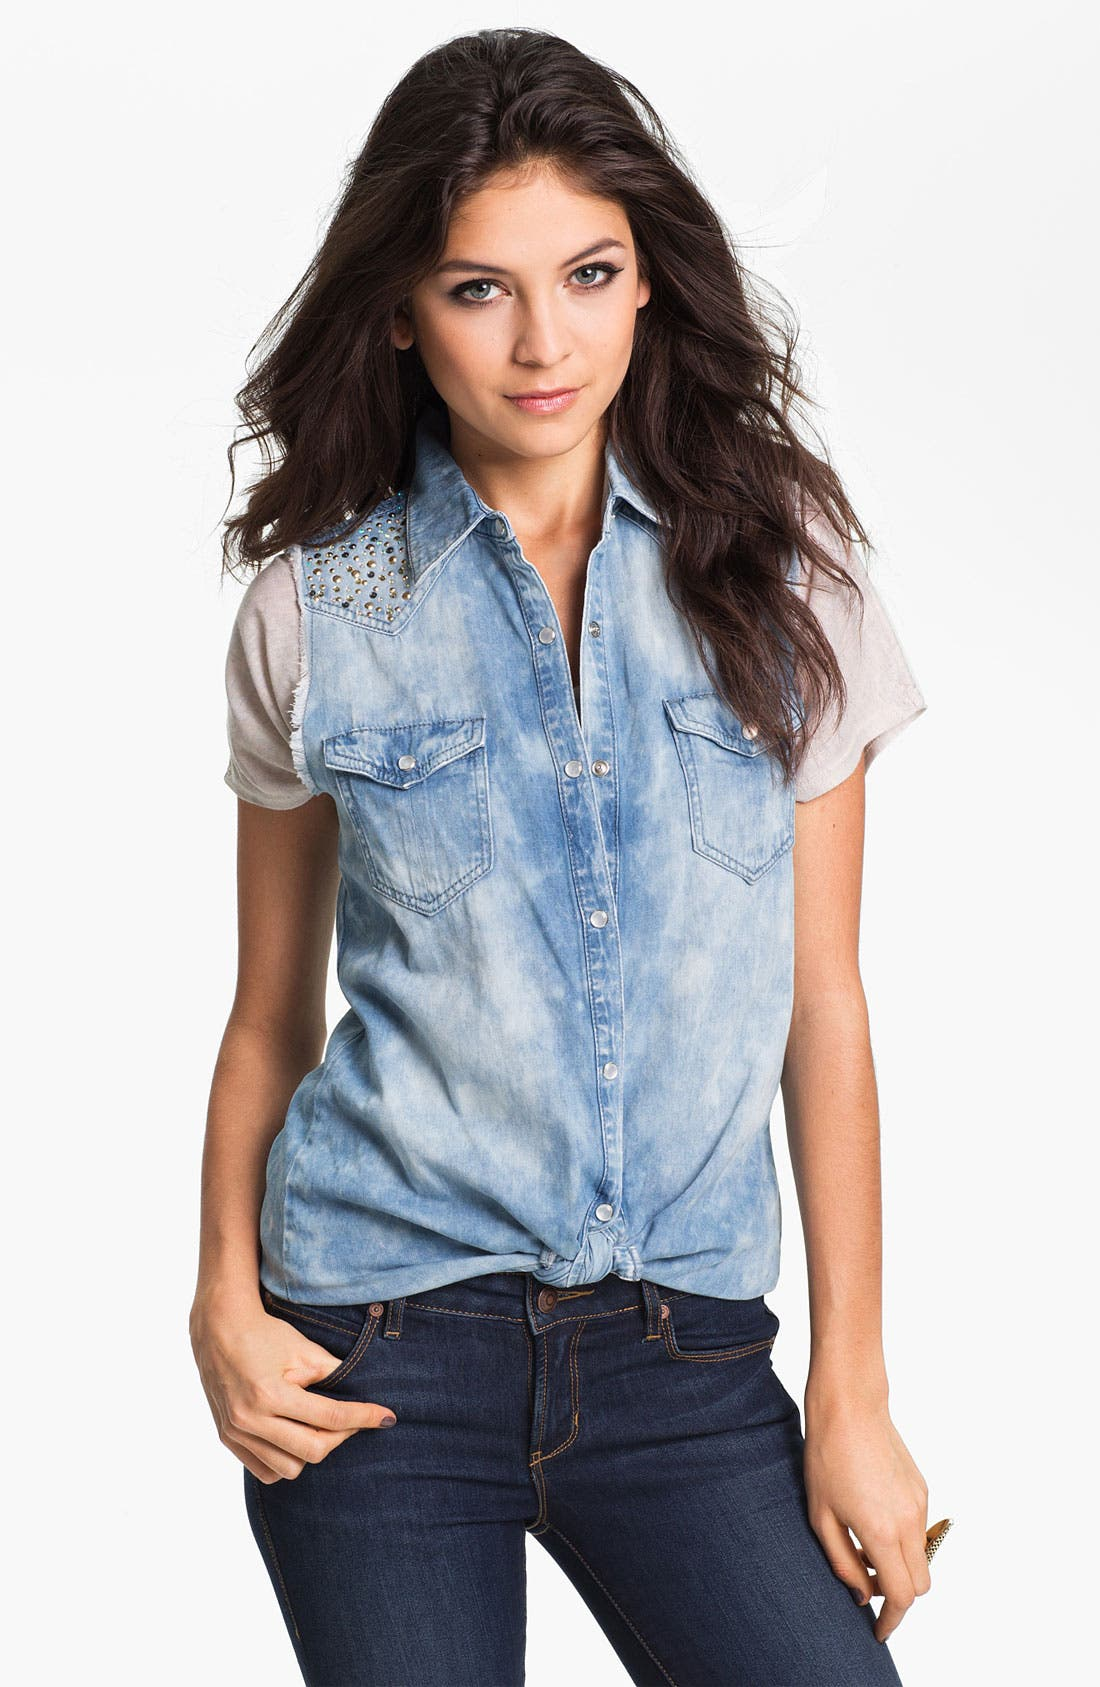 Alternate Image 1 Selected - Jolt Embellished Cutoff Chambray Shirt (Juniors)